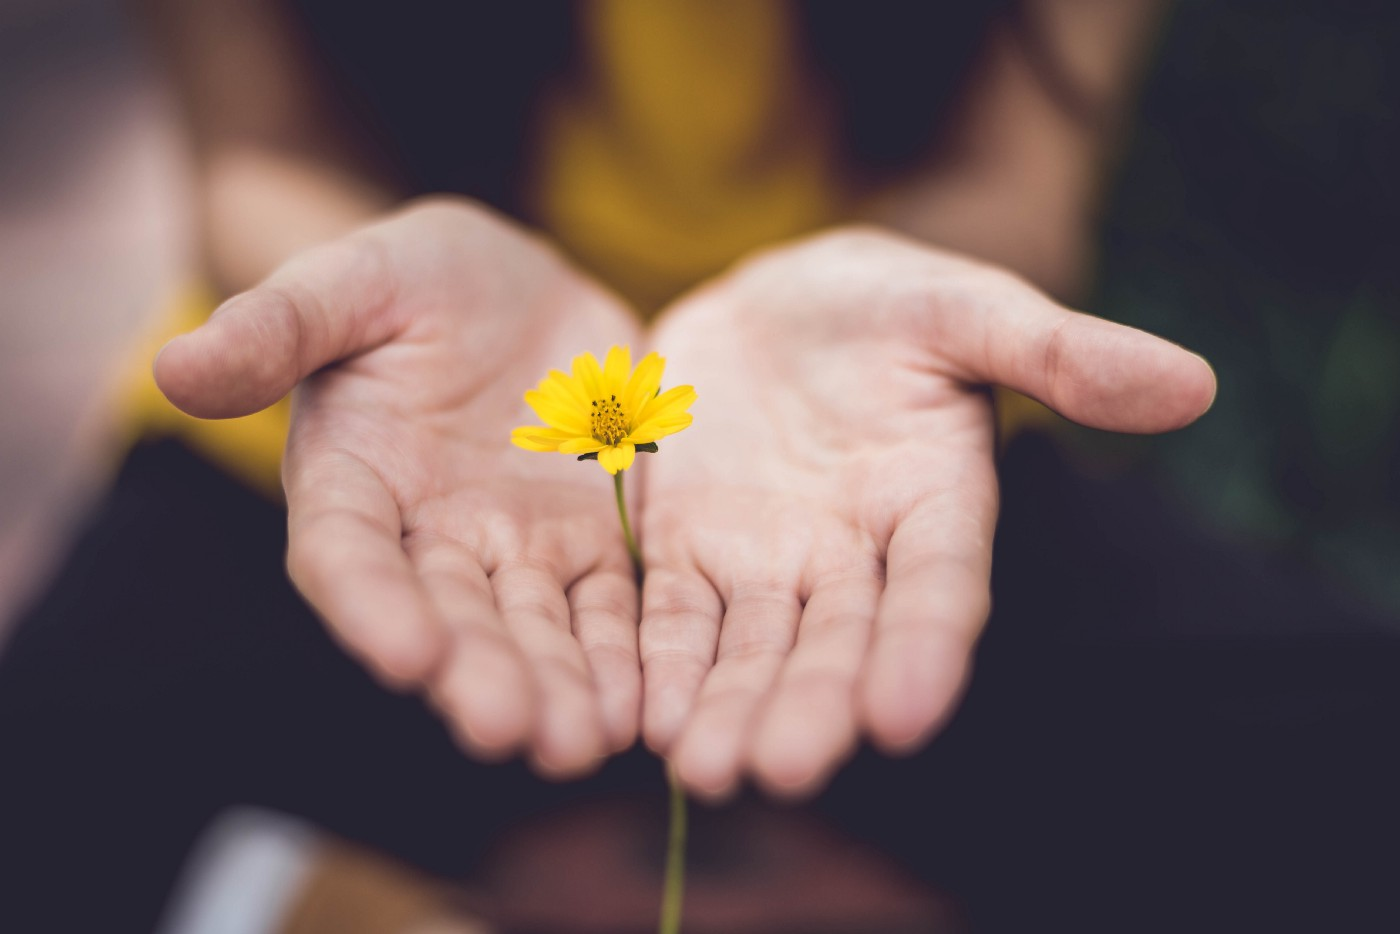 Hands together, palms upwards, with yellow flower coming up between the hands